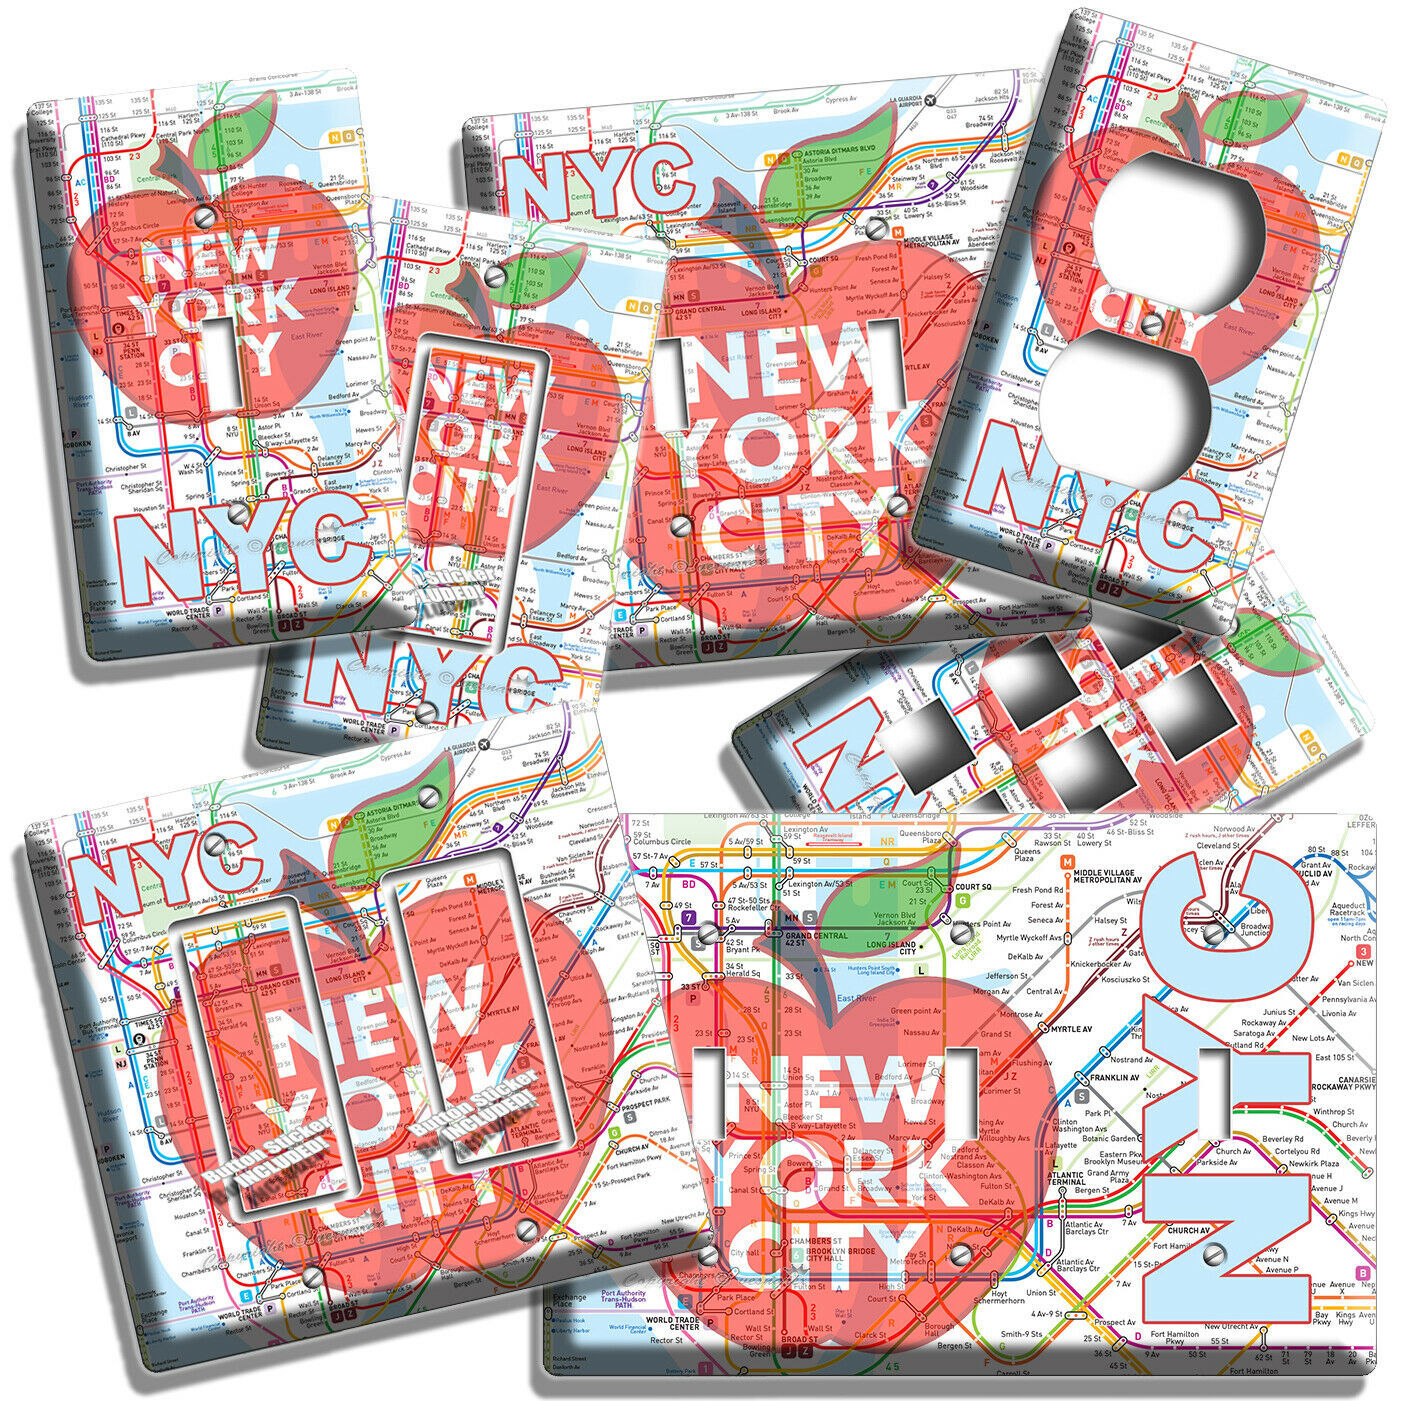 NYC NEW YORK CITY BIG APPLE SUBWAY MAP LIGHT SWITCH OUTLES WALL PLATE ROOM DECOR